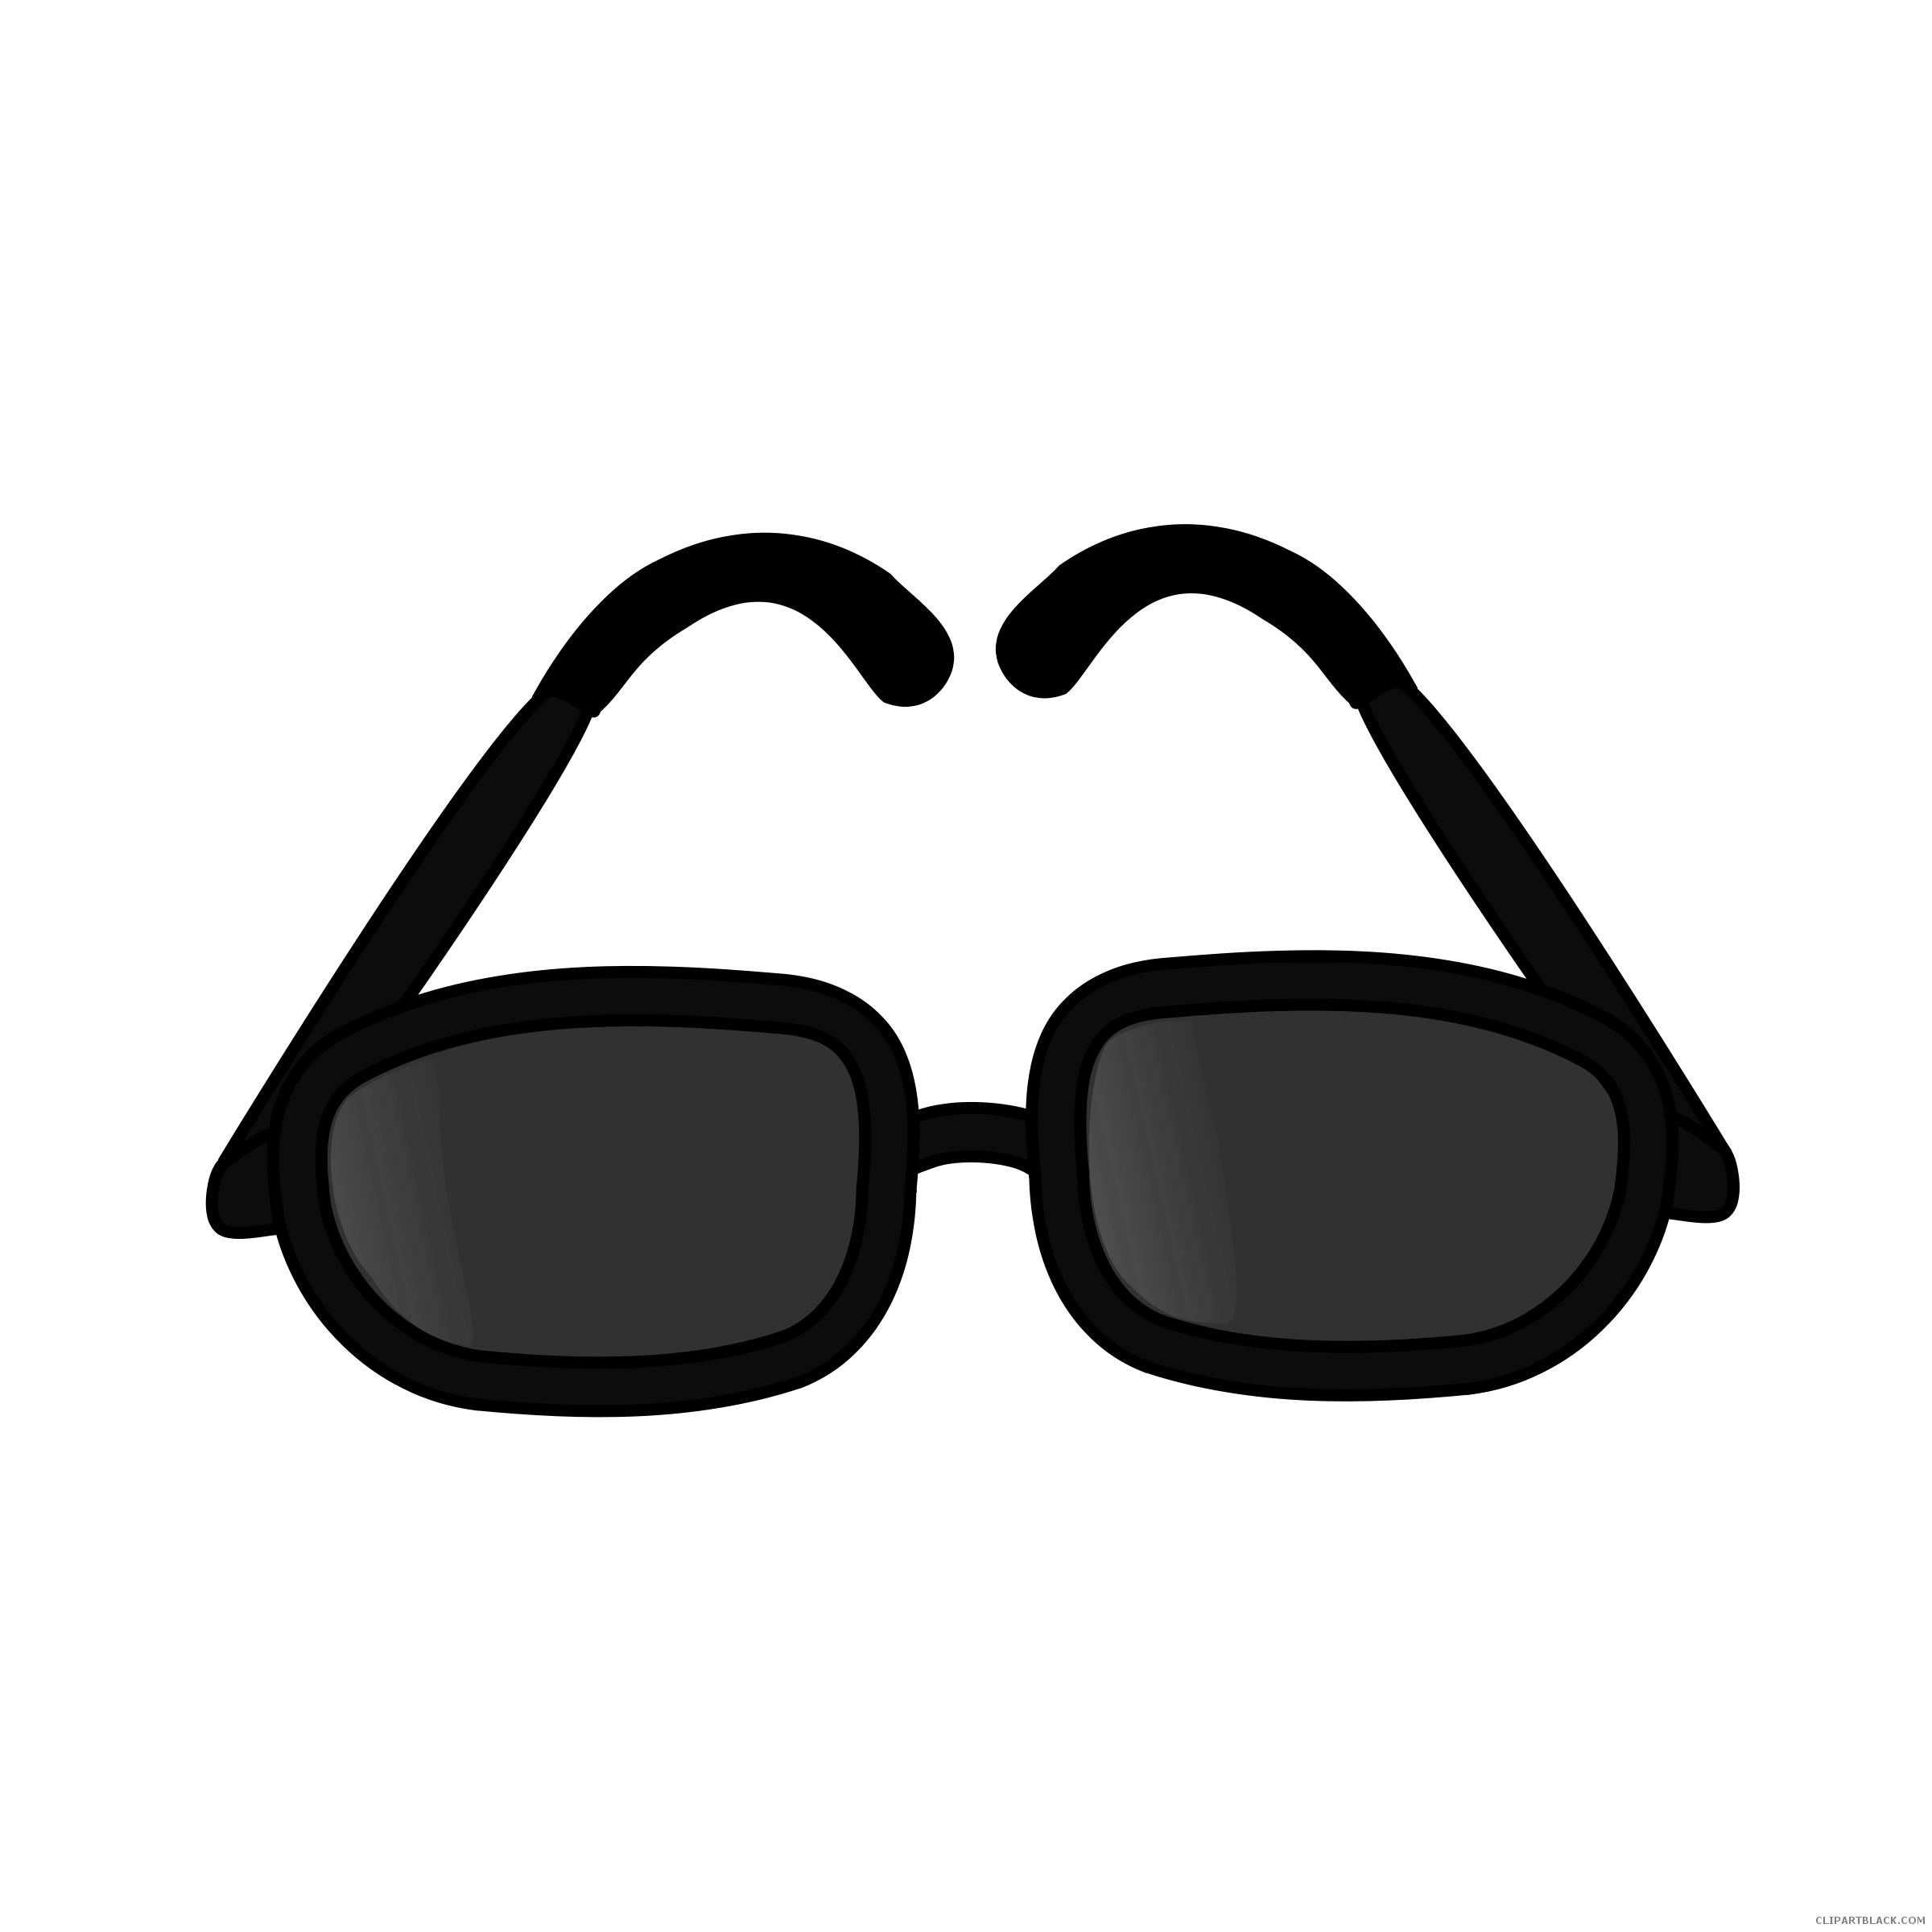 Tools free black images. White clipart sunglasses